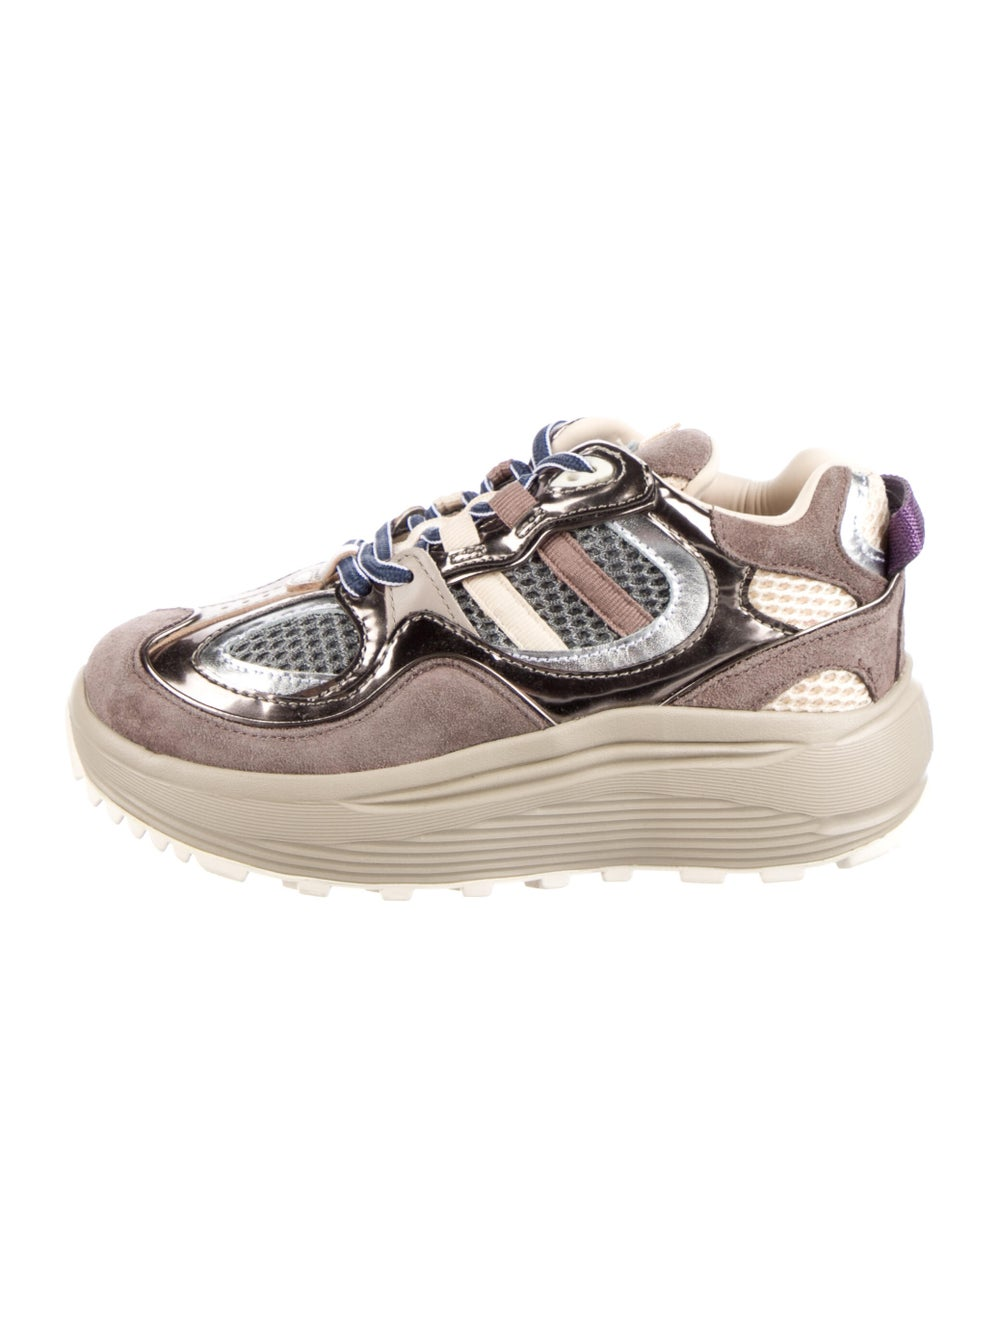 Eytys Jet Chunky Sneakers - image 1